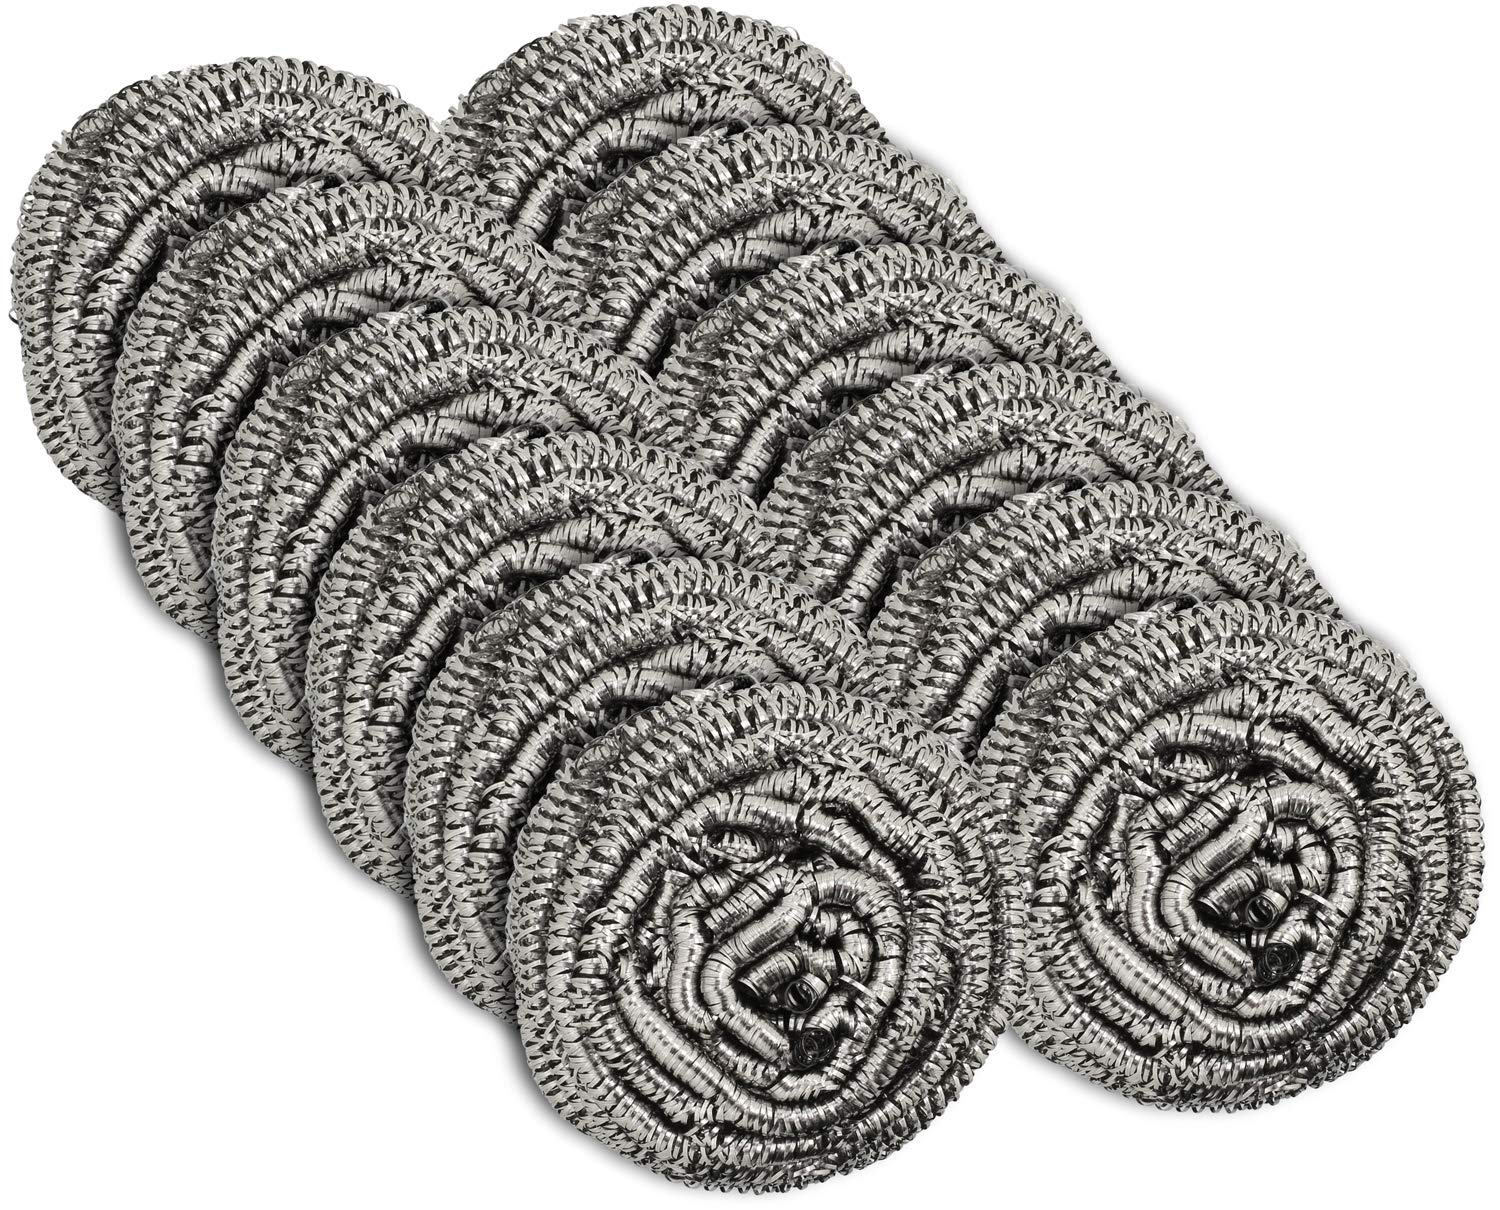 12 Pack Stainless Steel Scourers by Scrub It – Steel Wool Scrubber Pad used for Dishes, Pots, Pans, and Ovens. Easy scouring for Tough Kitchen Cleaning.